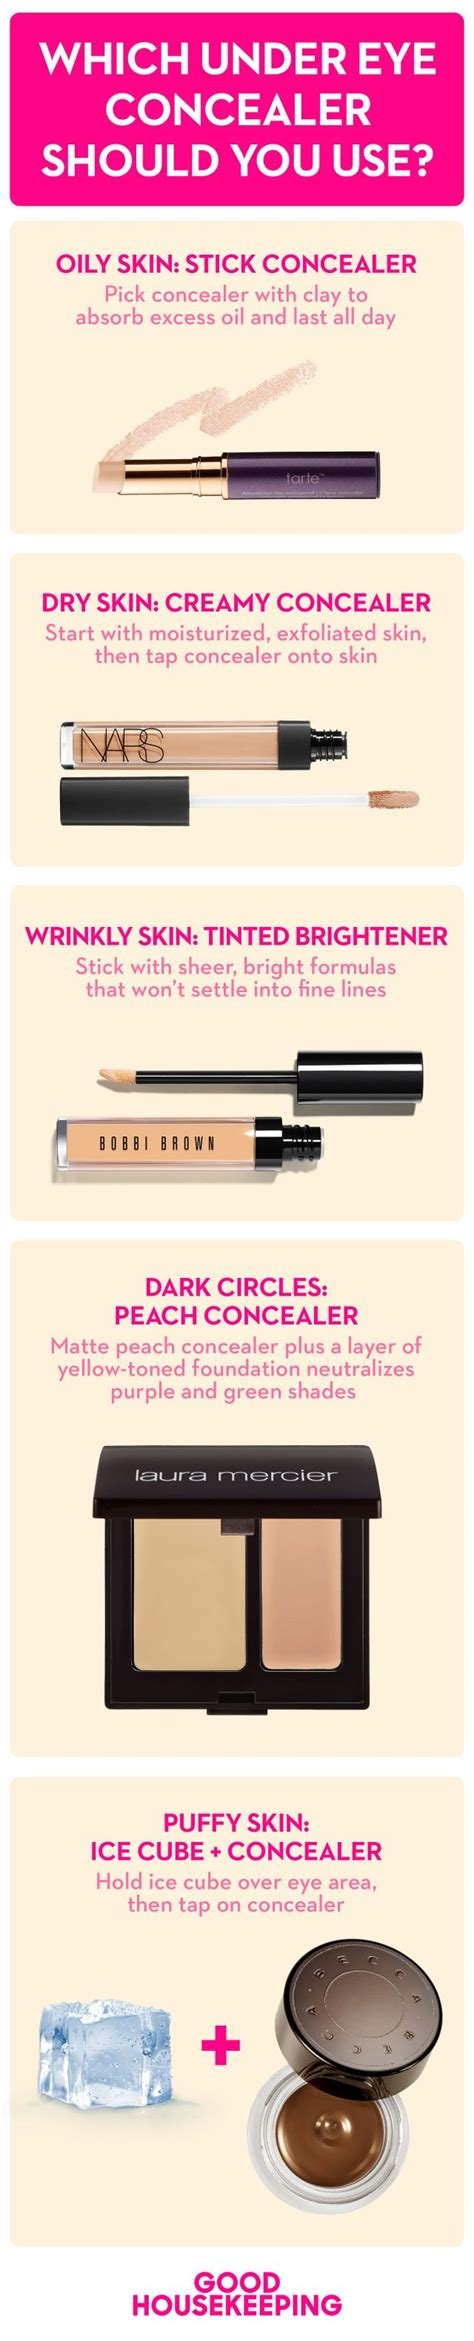 what color should your concealer be which eye concealer should you be using